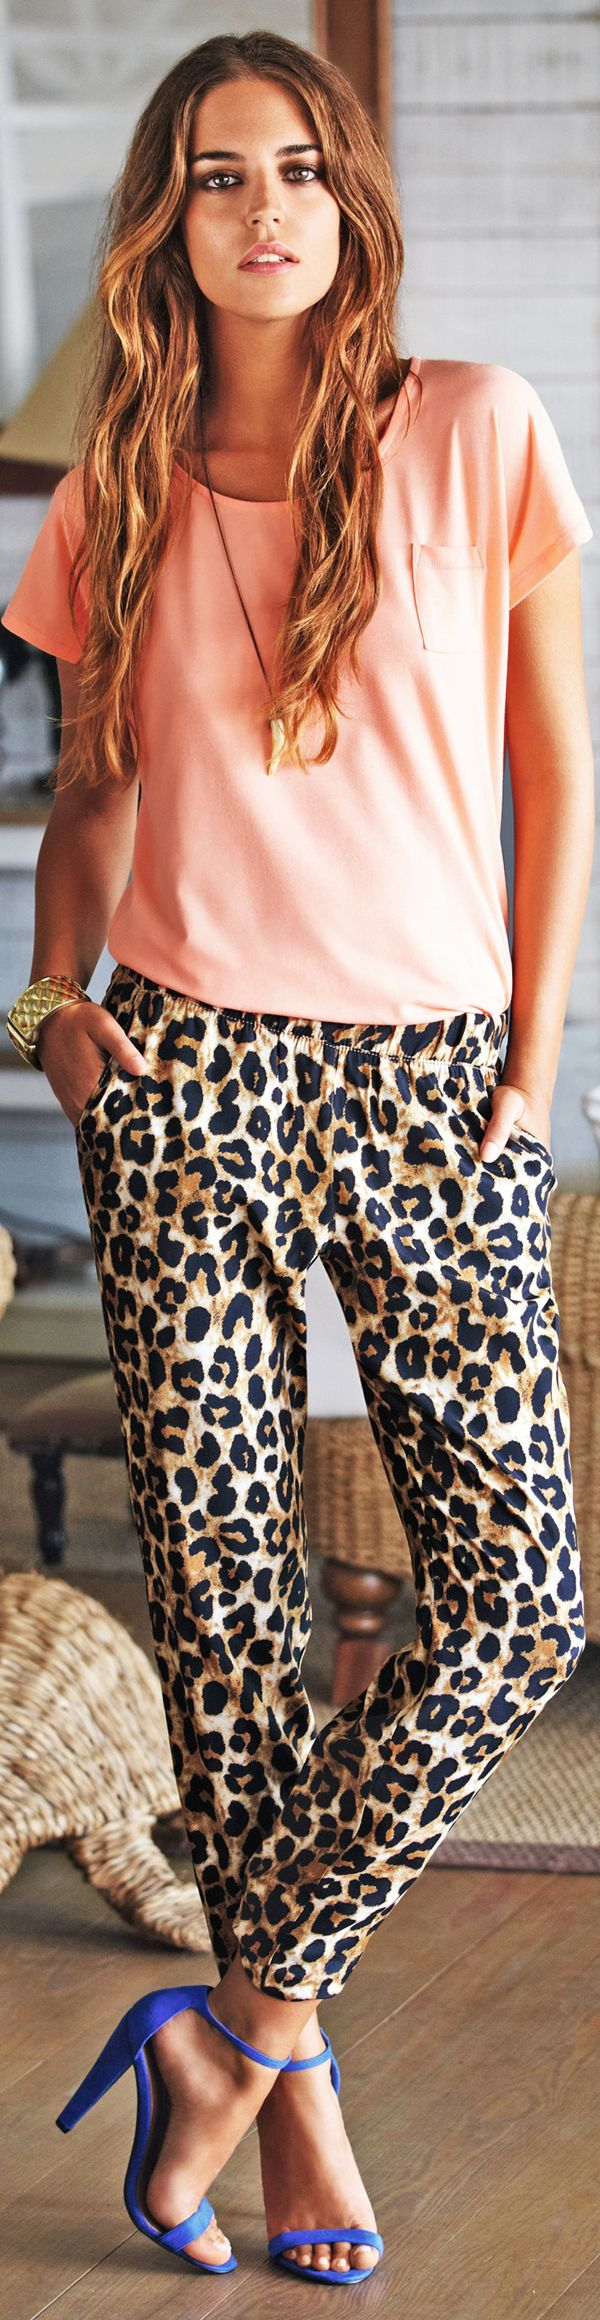 How to Wear Animal Prints - photo betty barclay prshots - read at http://boomerinas.com/2012/10/animal-prints-for-women-over-40-50-60/